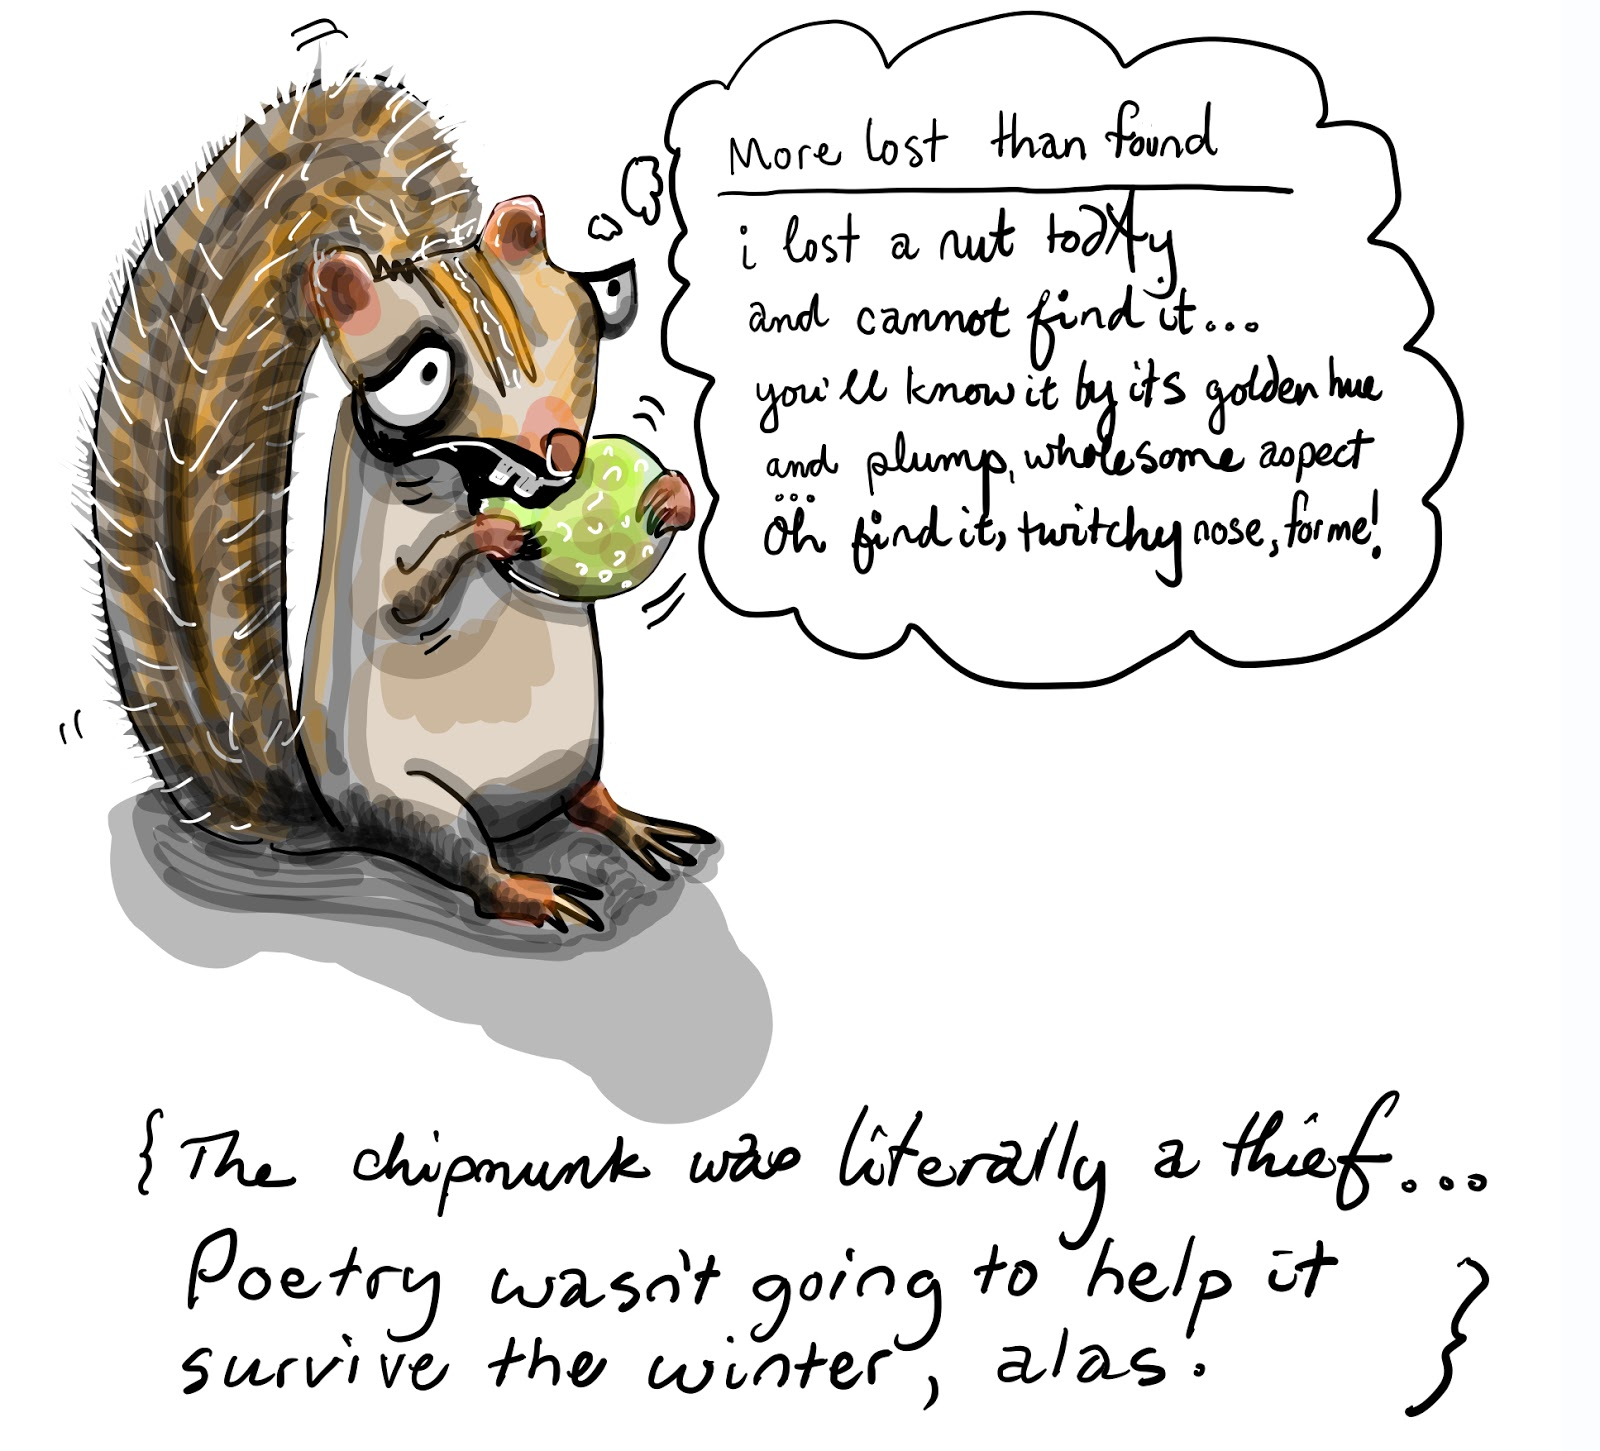 A poem about a nut